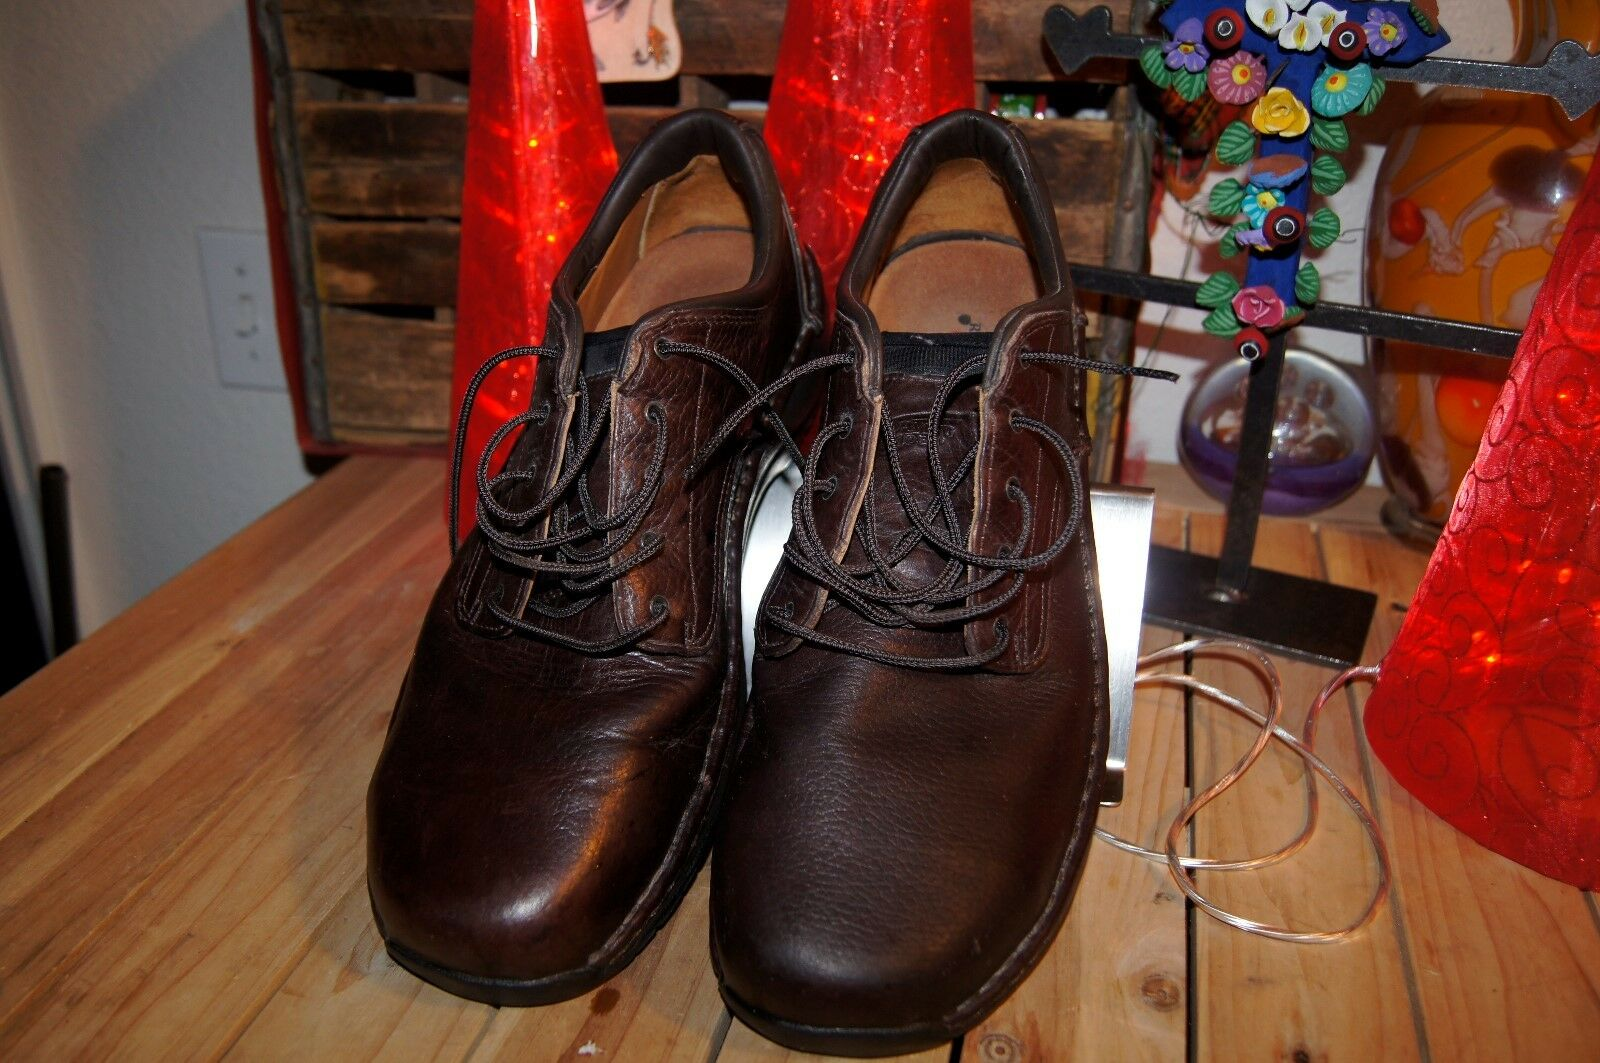 RED WING WORK SHOE SIZE13 D STEEL TOE-ELETRICAL HAZZARD STEEL STEEL STEEL TOE SHOES 13 D 11018a